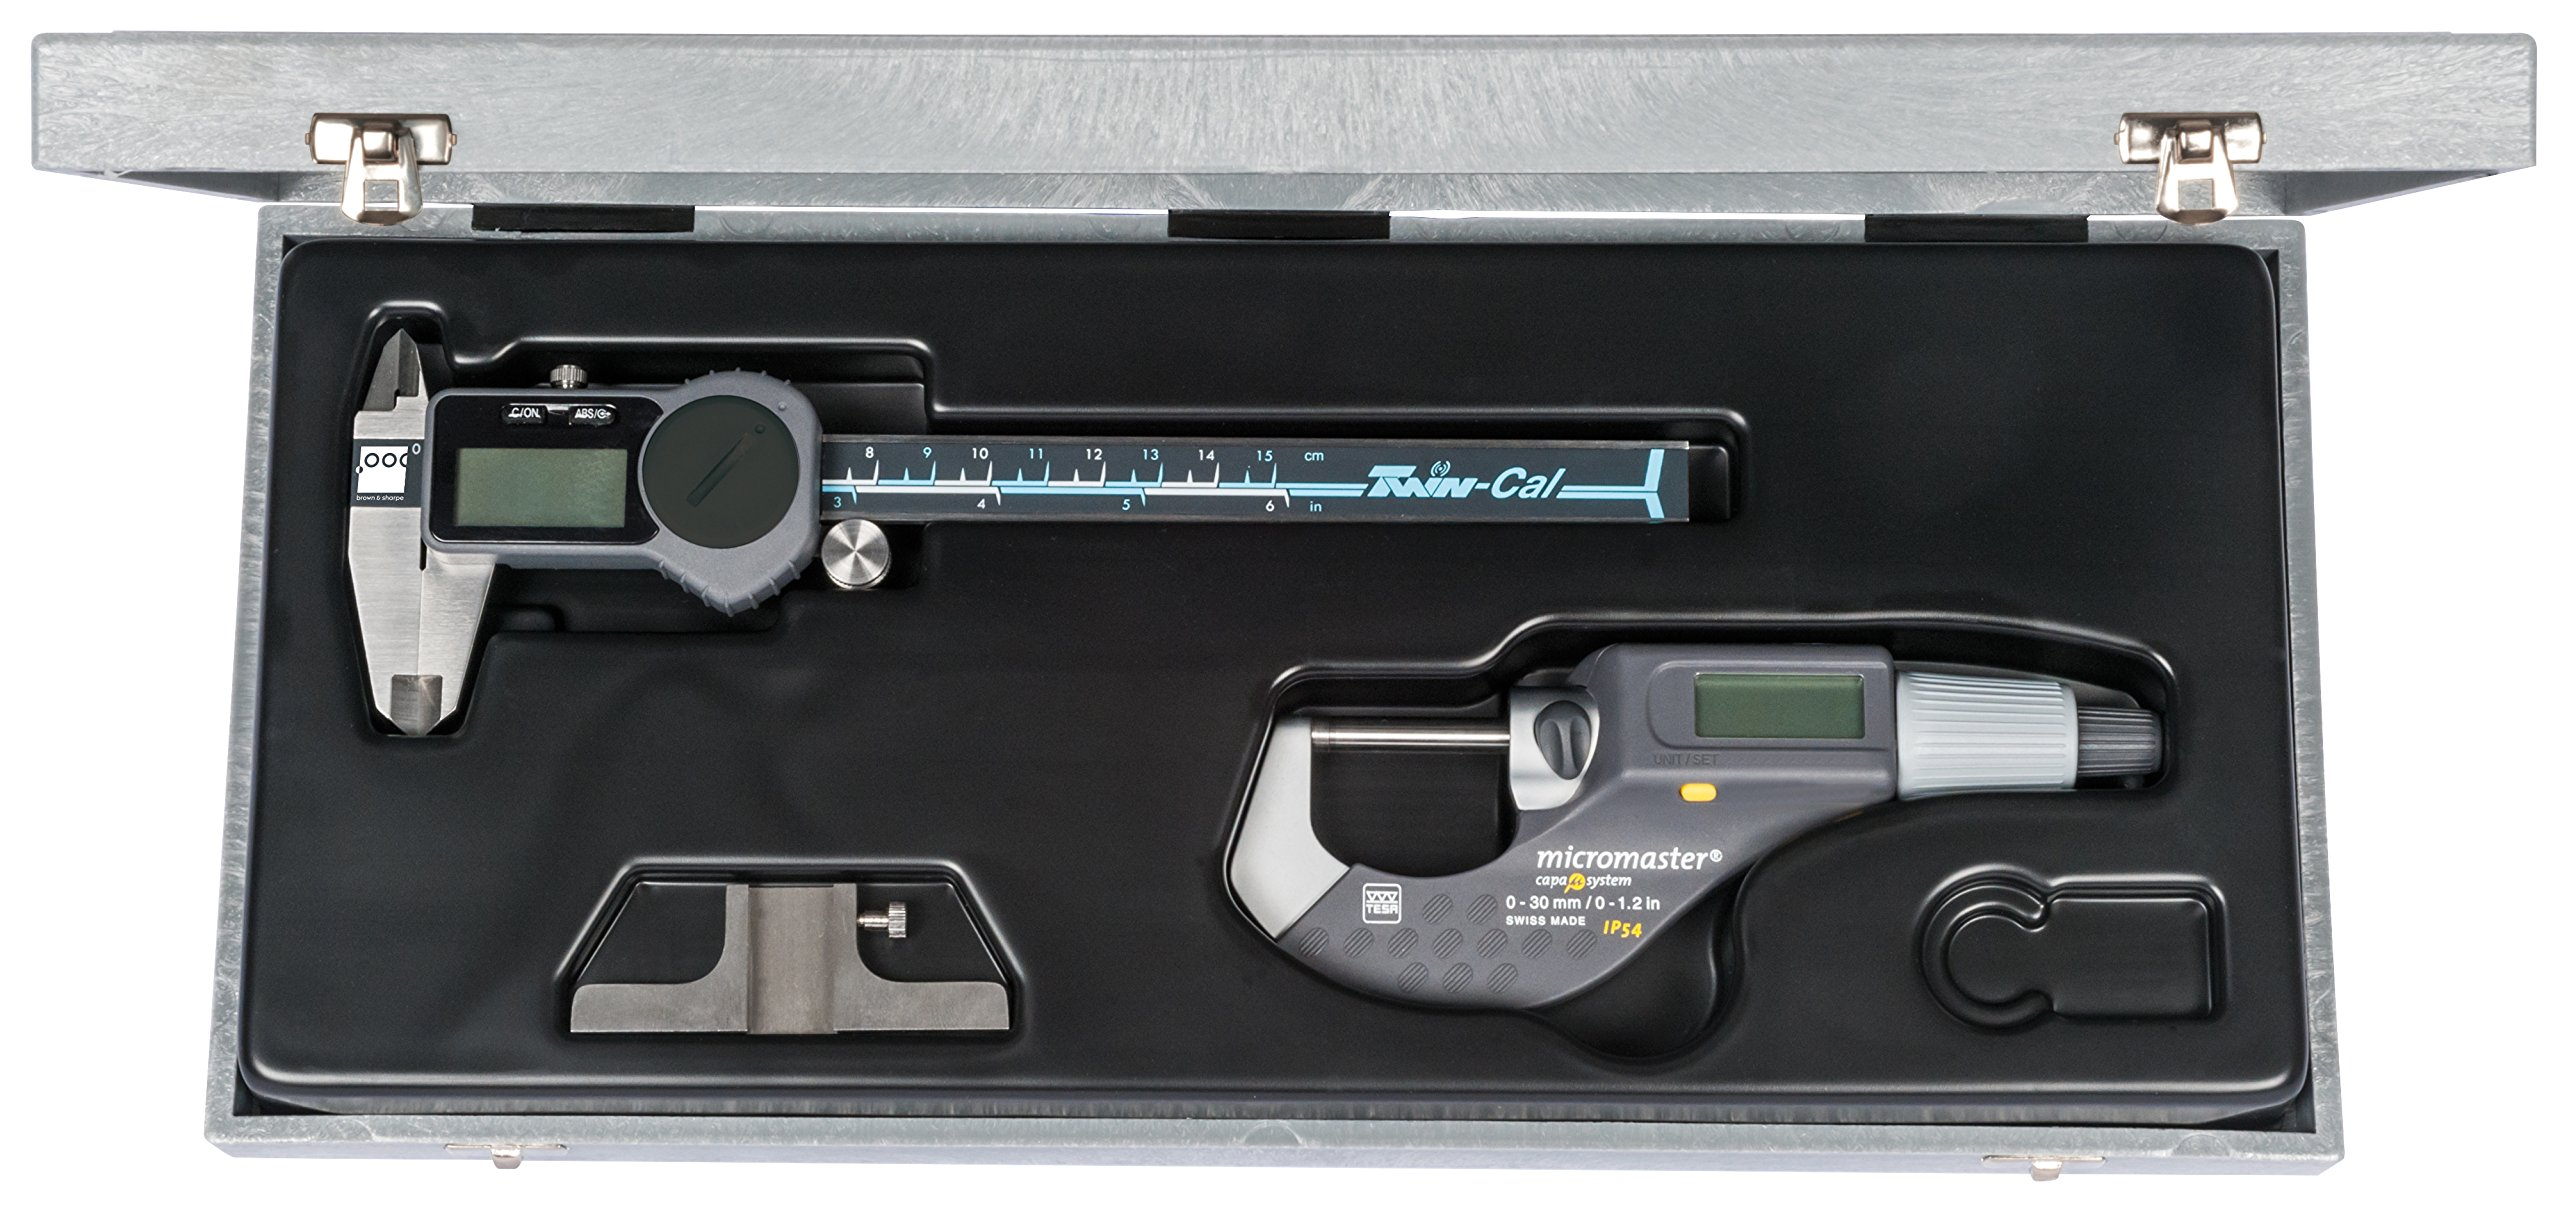 Brown & Sharpe 00591007 3 Piece Digital Electronic Precision Tool Set with Shop-Cal Caliper